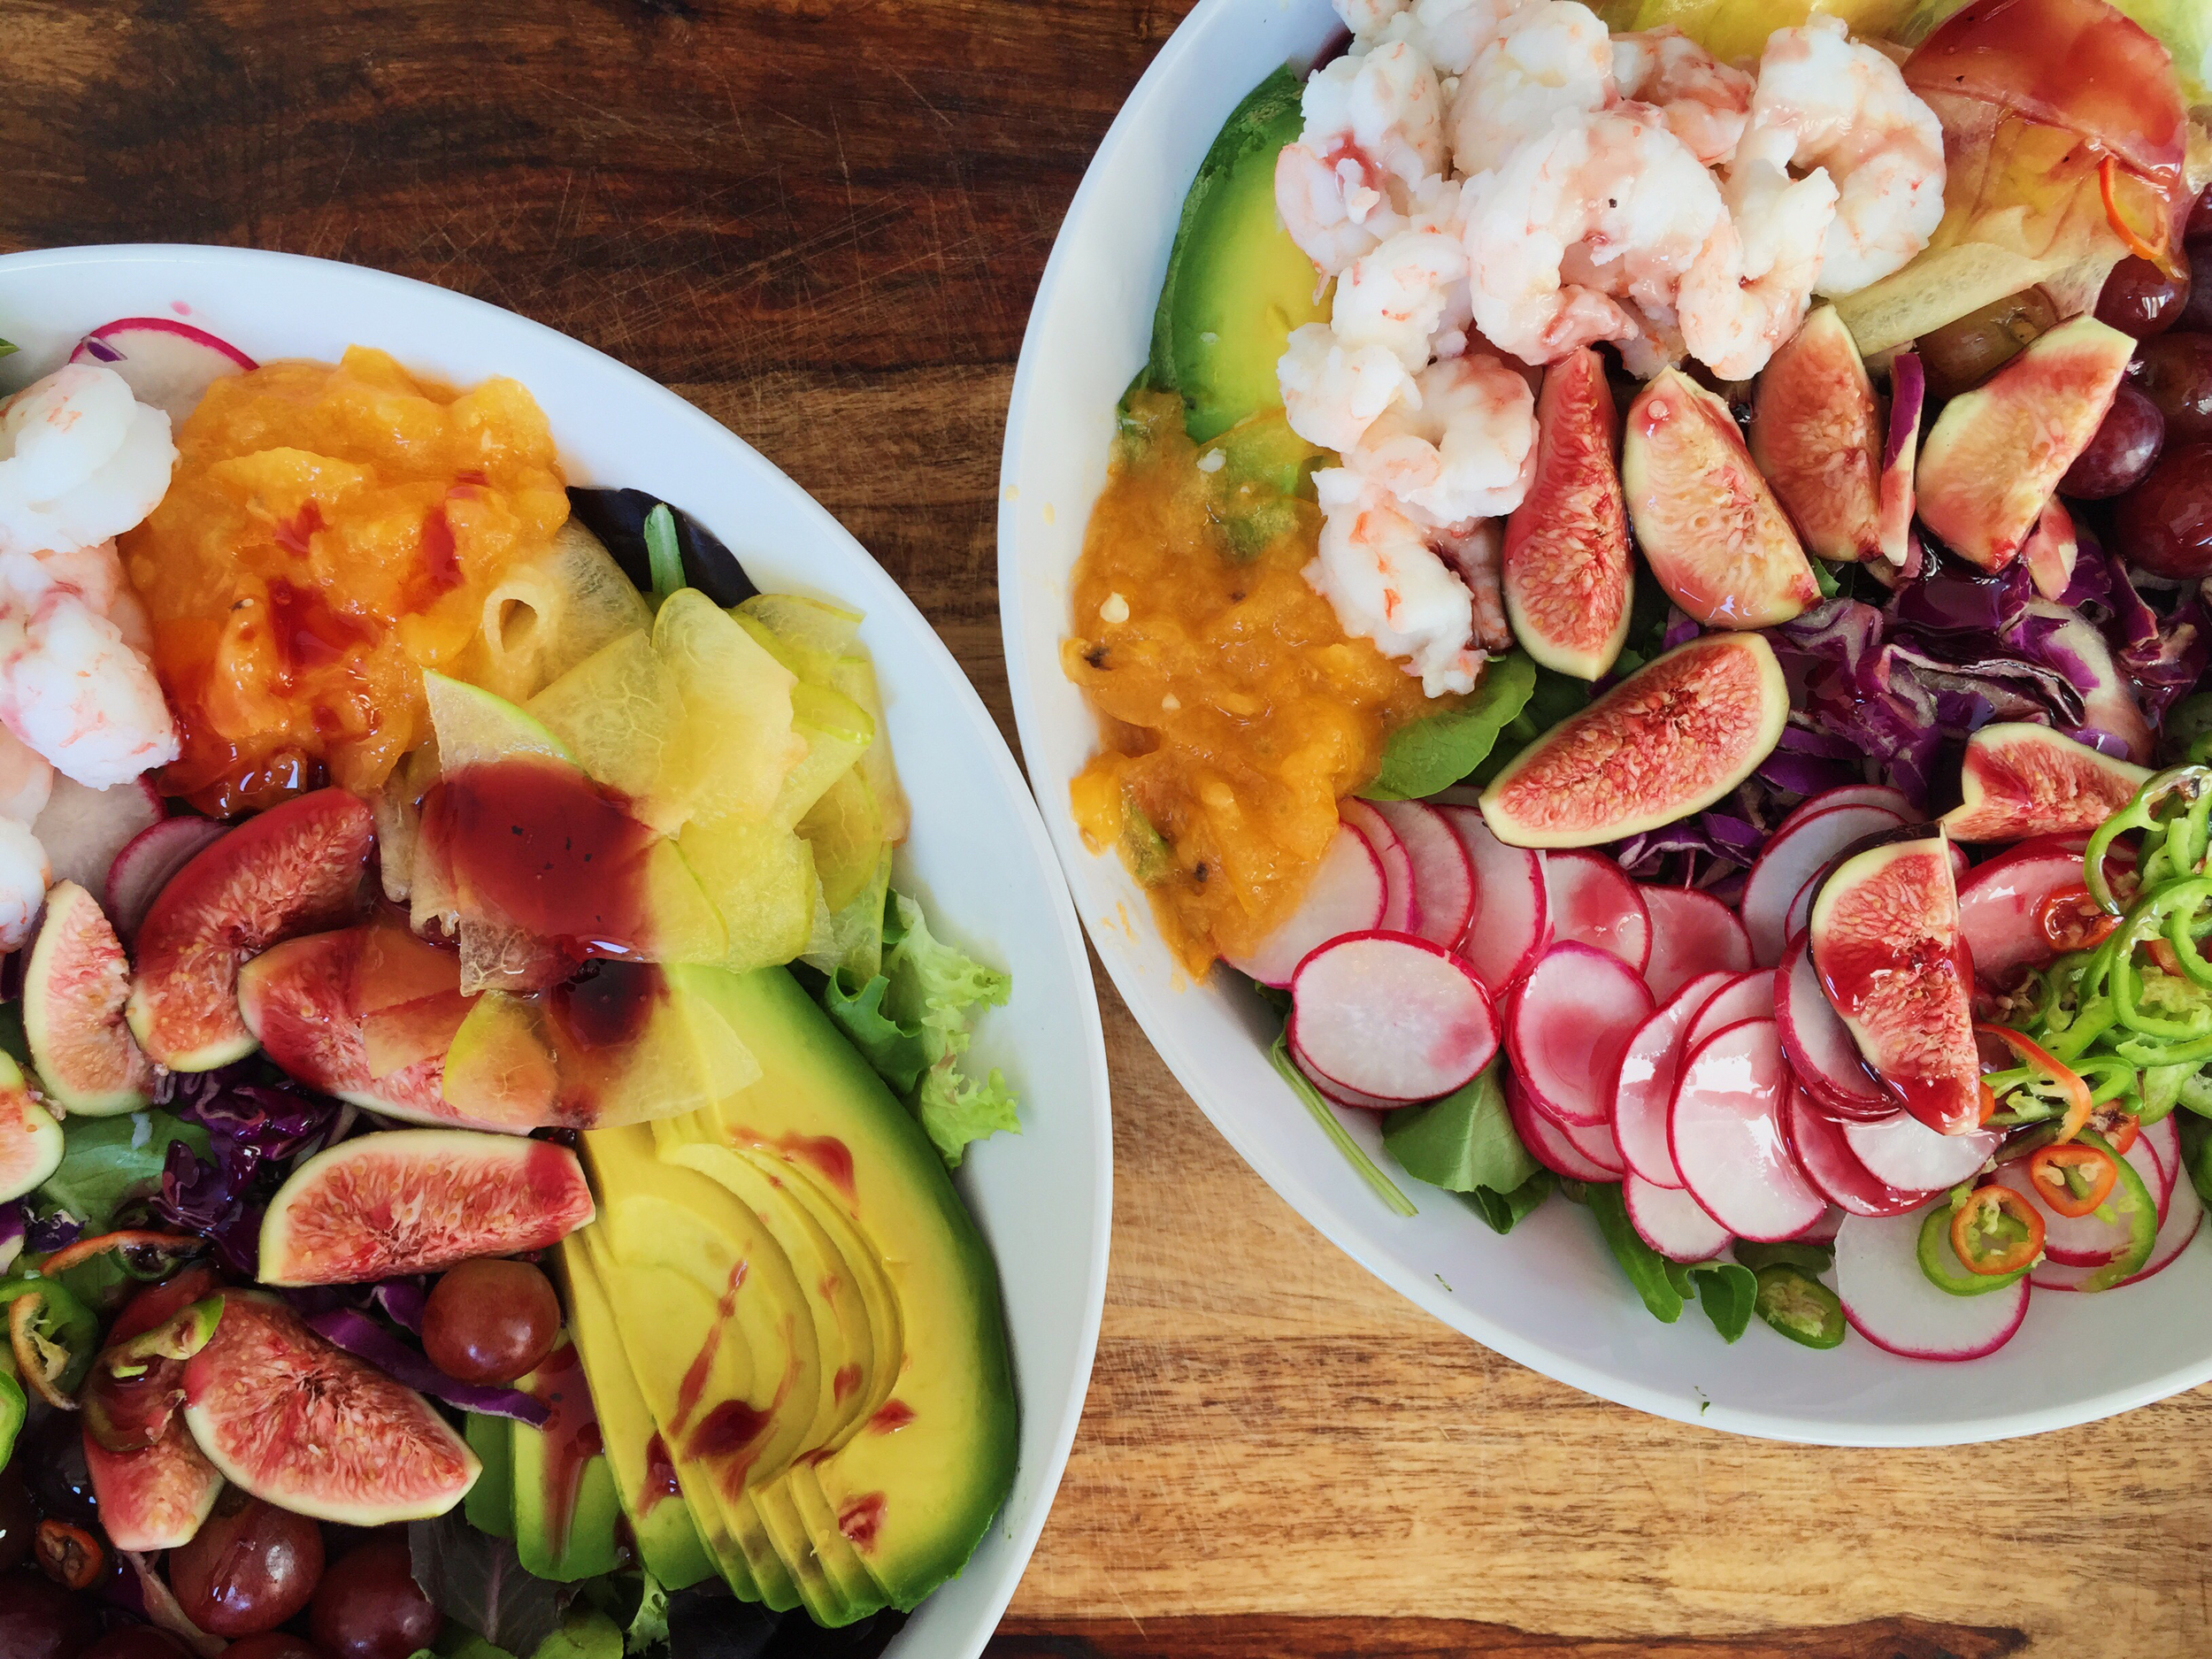 SHRIMP AND SPICY FIG SALAD